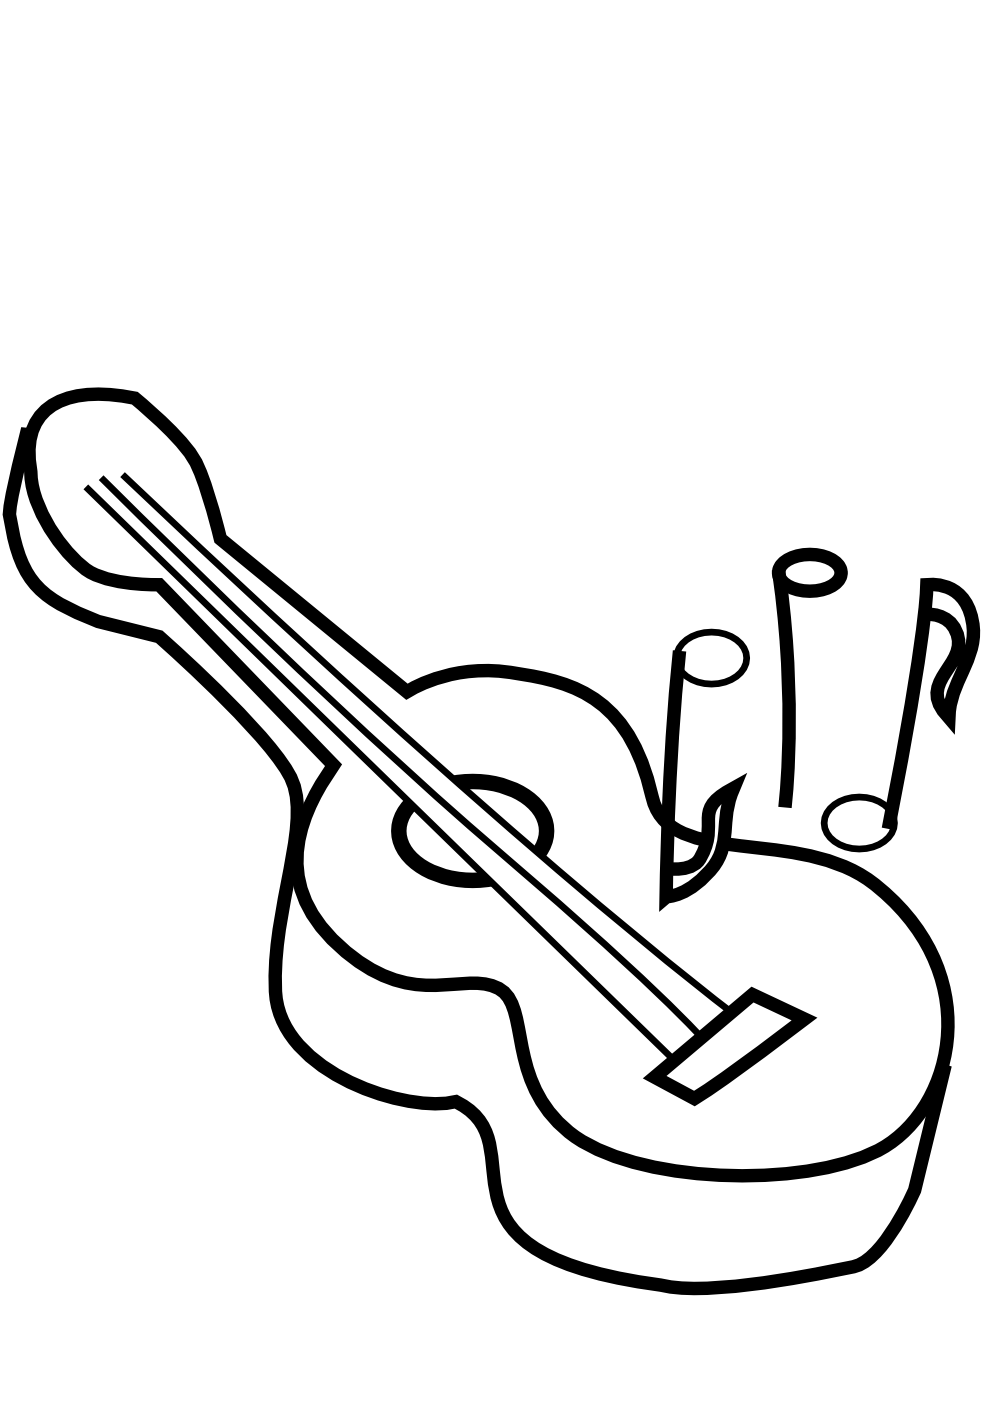 Guitar  black and white guitar clip art black and white free clipart images